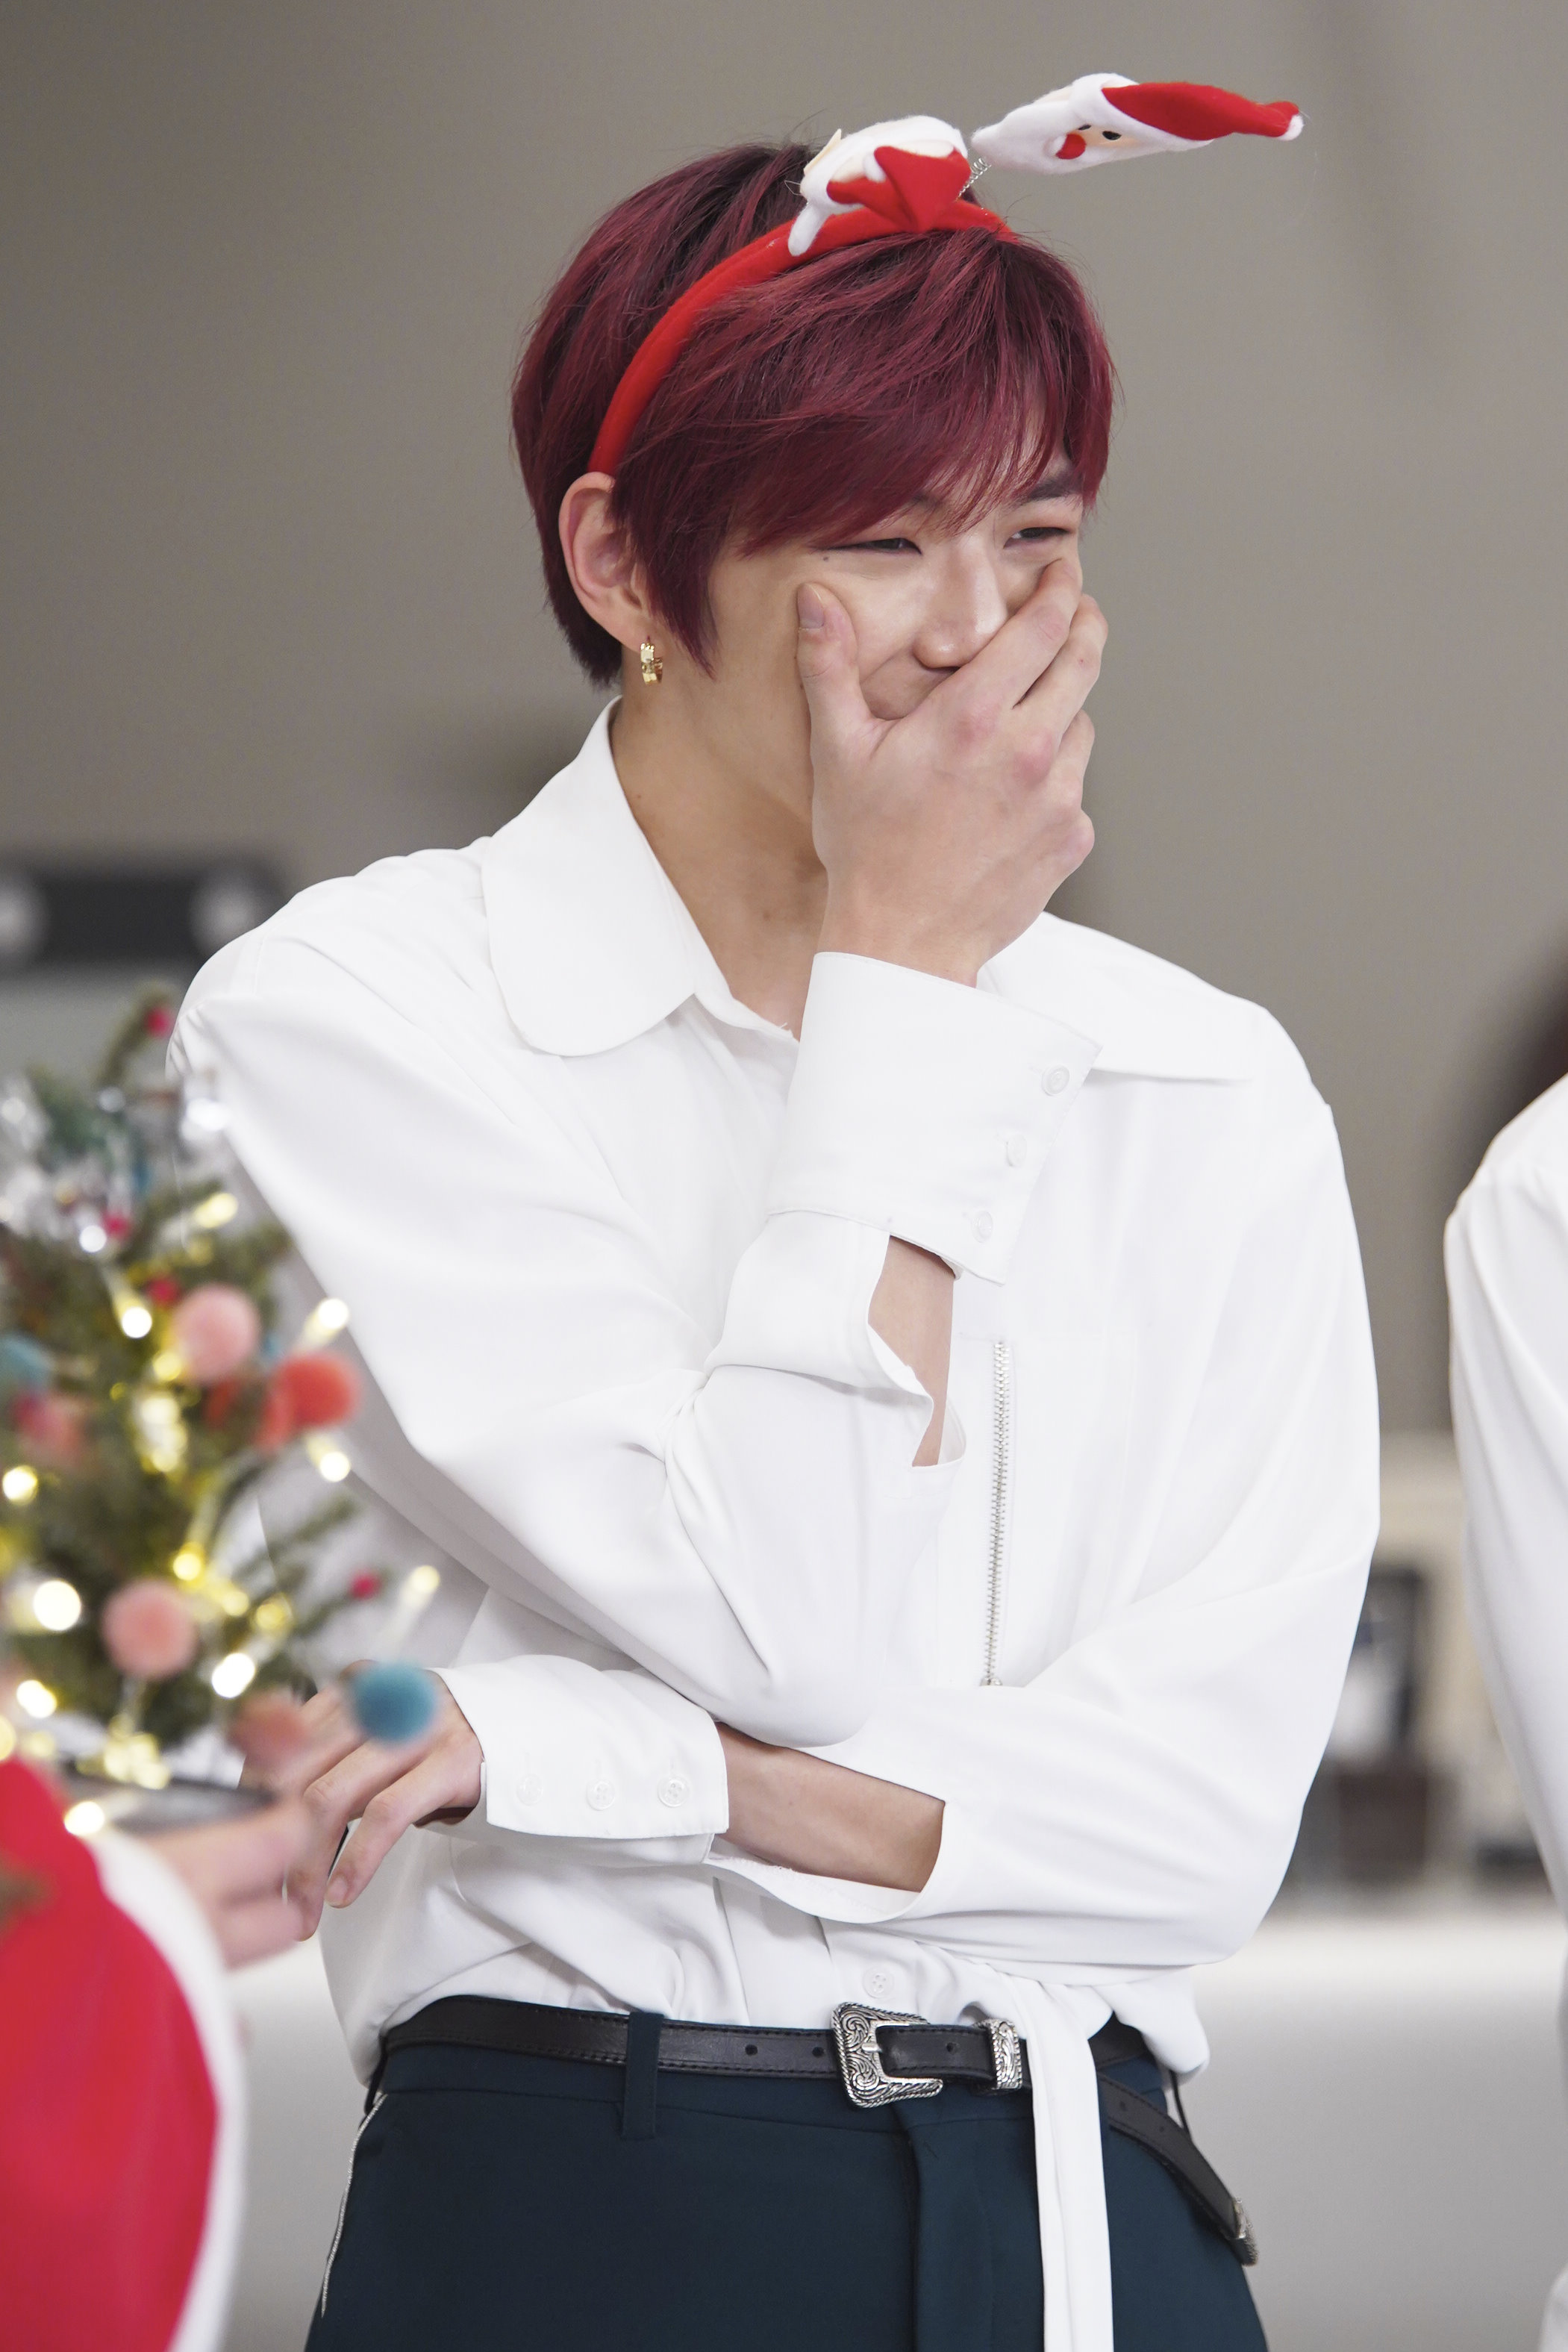 "<p>Wanna One Kang Daniel this JYP with raised 'Idol room' signature pose of plagiarism include the clarification.</p><p>25 to be broadcast JTBC 'Idol room'is a Christmas fit for 2018 starring in 35 of the teams idol during the Big Bang, win, Wanna, One, (girls)children directly to find a gift to convey 'thank you Awards'furnished with. Especially Wanna One is the 'Idol room' 1 the guest of this program, the signature of the posing Productions, top hits, etc of the world and the winners determined.</p><p>MC Jeong Hyeong-don and Defcon Kang Daniel this gift for 'Home'hand-painted for quality of the program signature pose until the present continued use. However, over the past 9 month, JYP J. Y. Park is posing with his hit song 'his home'the point of the choreography is the same, and the 'plagiarism include'raise a big laugh.</p><p>This again starred for Wanna One Kang Daniel, MC Jeong Hyeong-don, this official asked not to be named. Kang Daniel ""pose is really different,""said directly and compare the difference, such as a clear rebuttal to your plagiarism controversy to the finish, but that was after.....</p><p>Kang Daniel it says the program signature pose of truth is 25 Tuesday evening 6: 30 PM, to be broadcast in JTBC 'Idol room'can be found at.</p><p> - The copyright owner ⓒ -</p>"